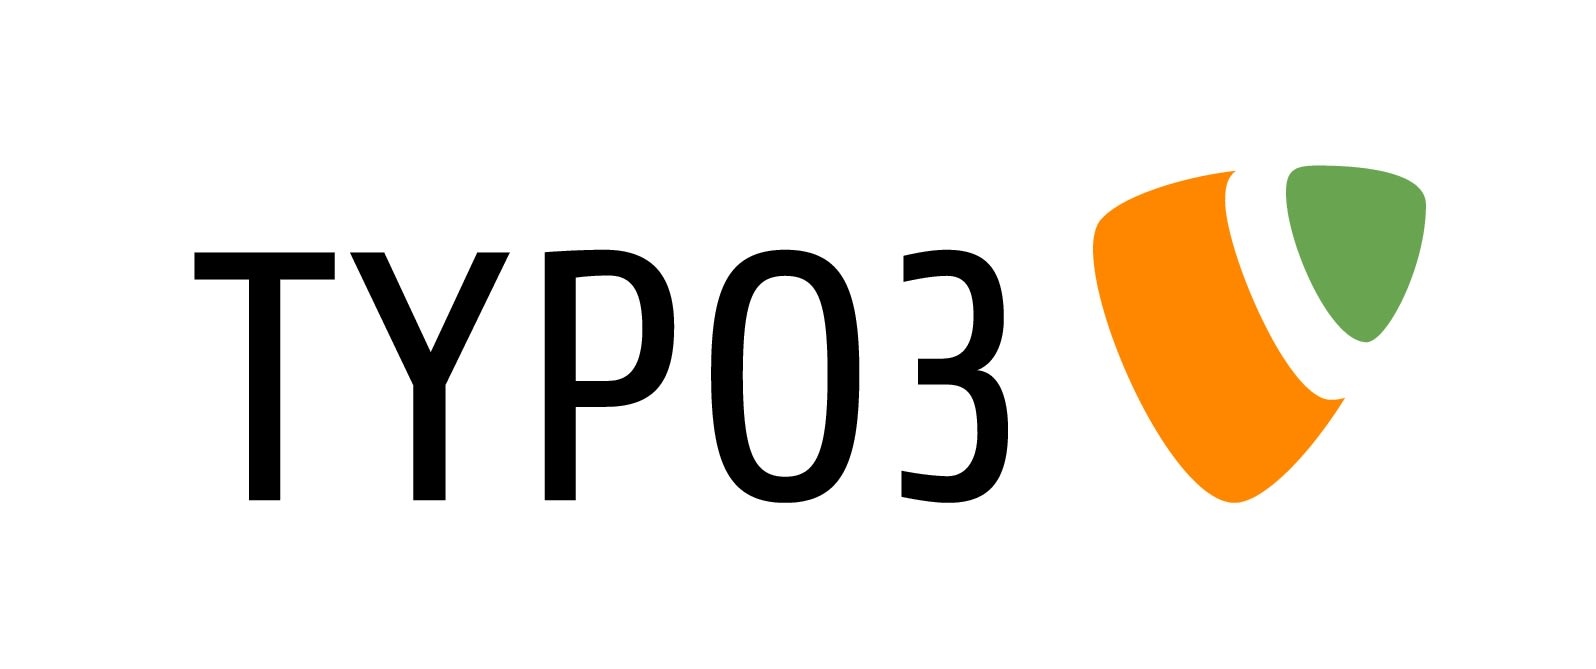 TYPO3 releases a slew of updates